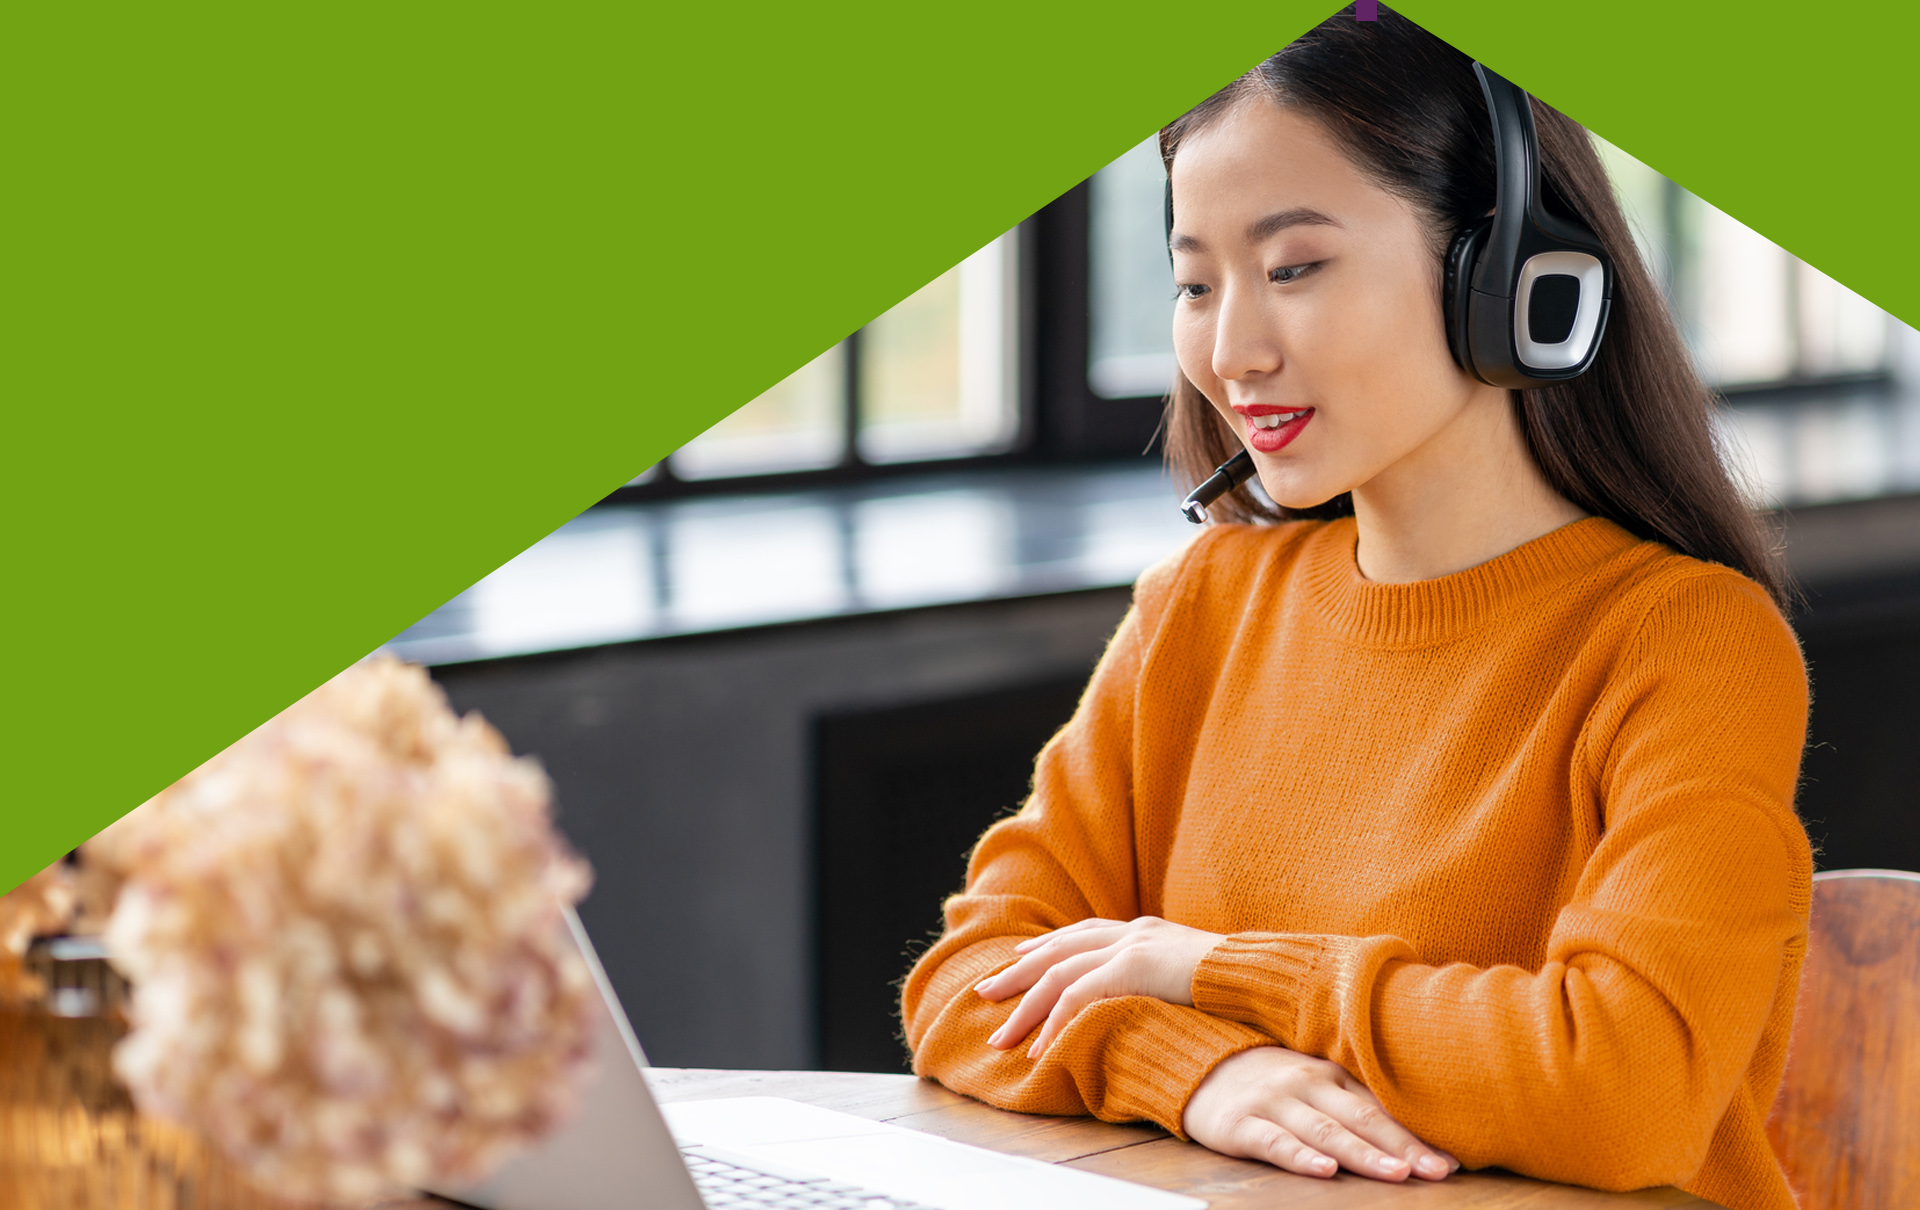 Contact Centre Readiness & Strategy